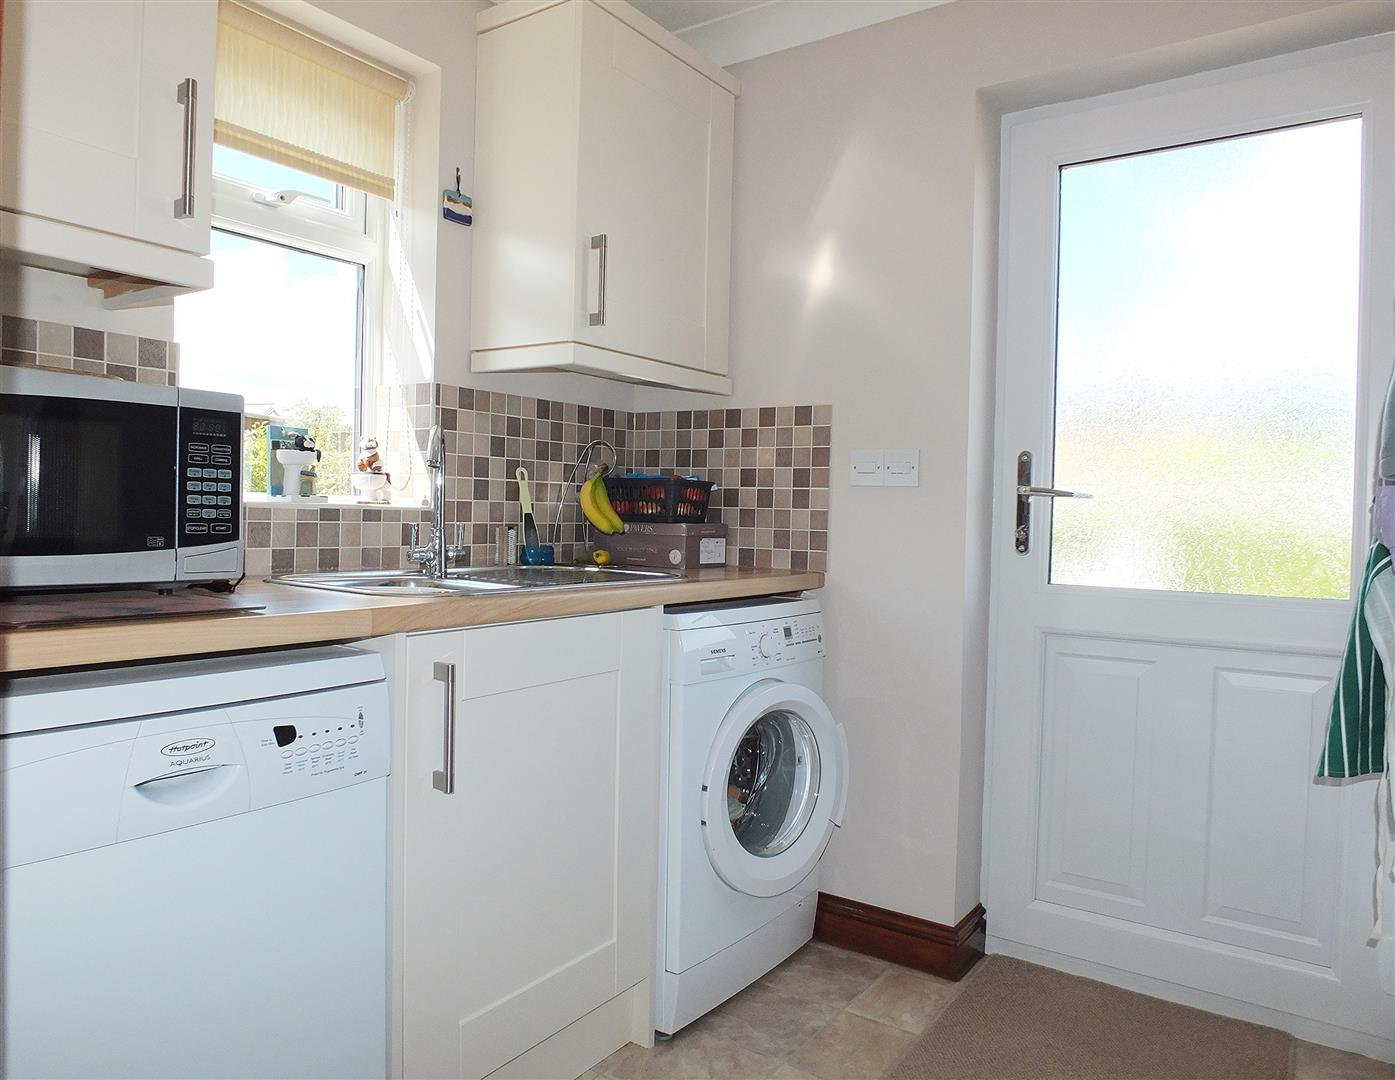 3 bed detached bungalow for sale in Long Sutton Spalding, PE12 9FT  - Property Image 8